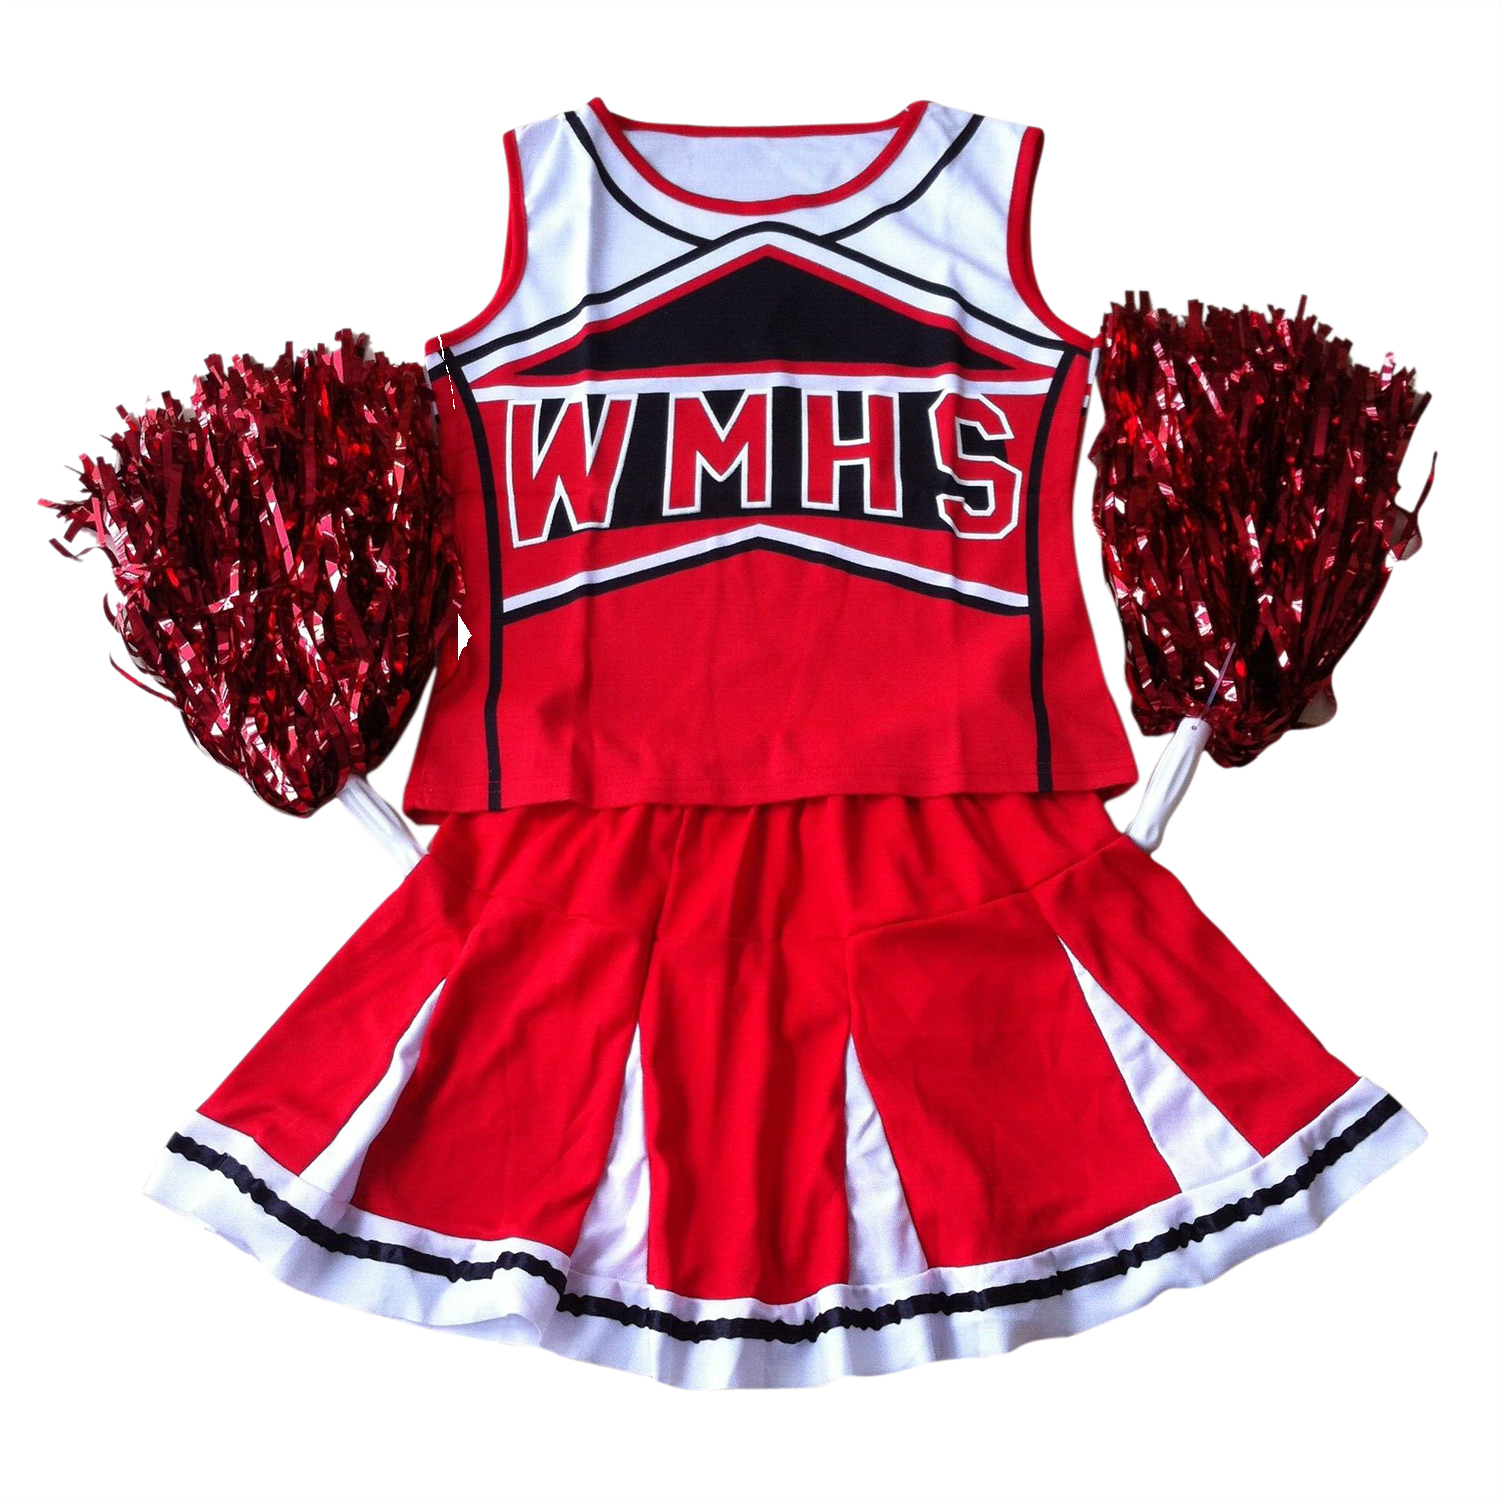 SZ-LGFM-Tank top Petticoat Pom cheerleader cheer leaders S (30-32) 2 piece suit new red costume